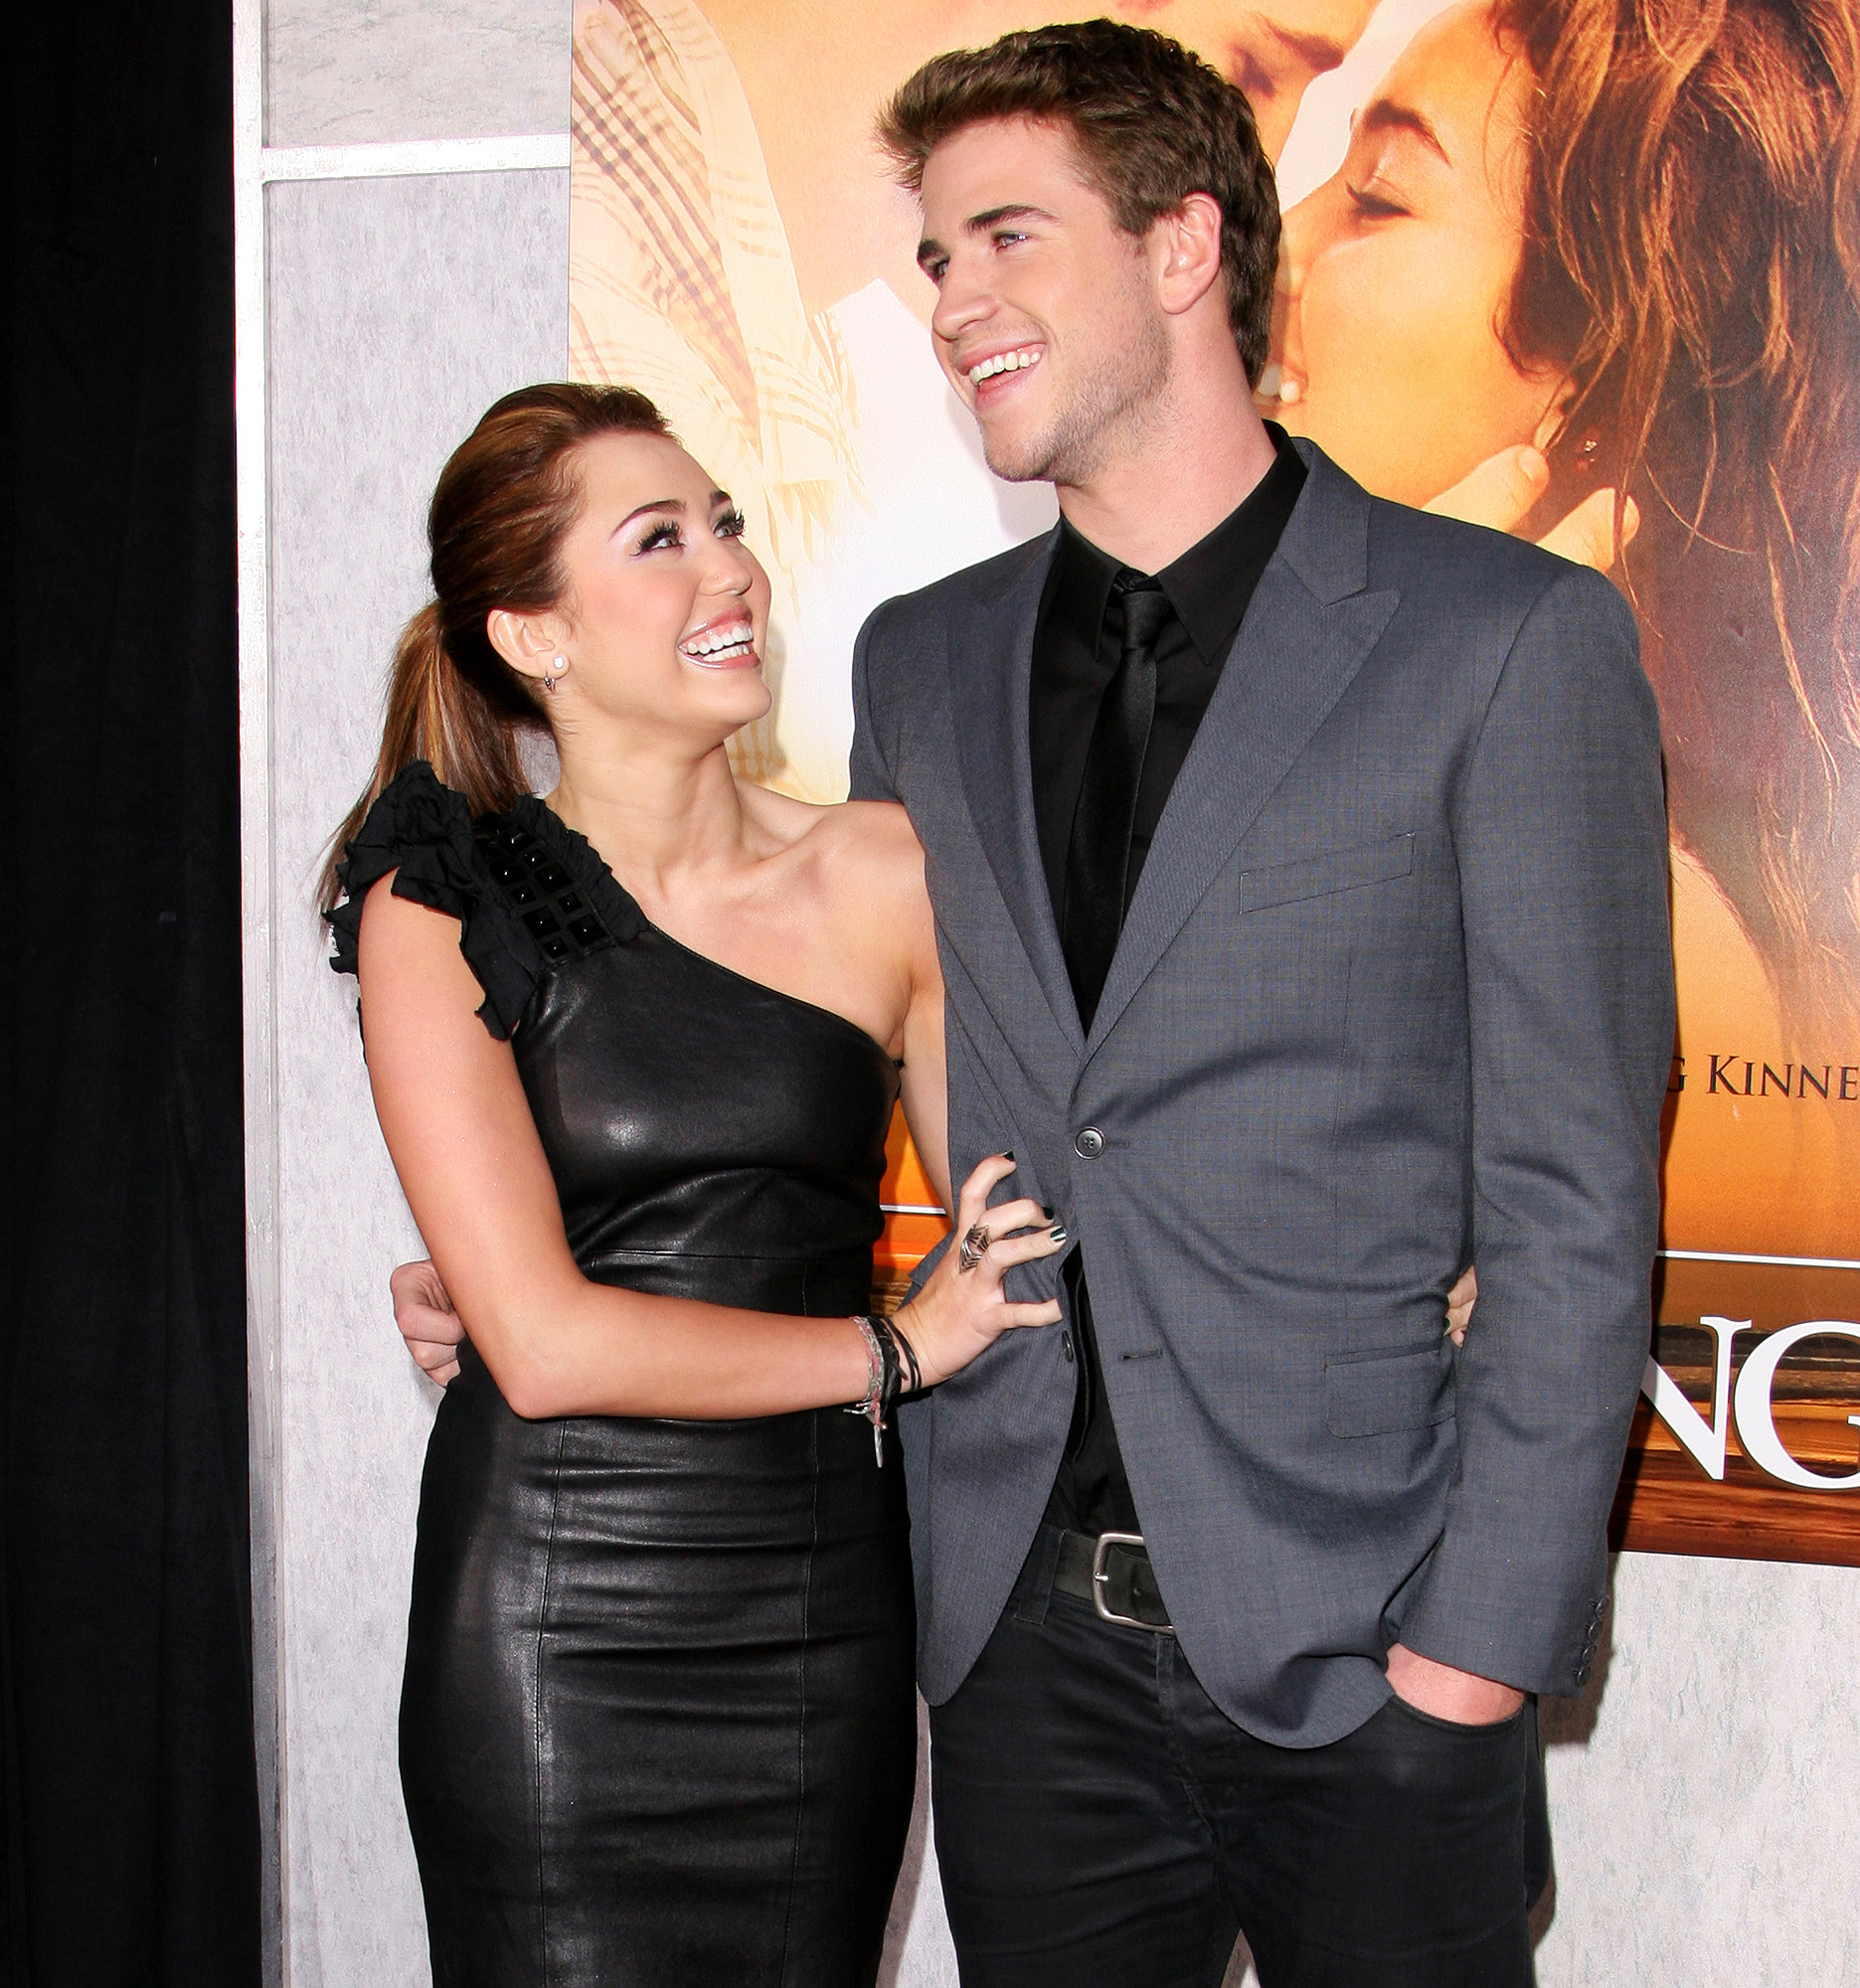 Miley Cyrus Sex Porn - Miley Cyrus Had Sex With Liam Hemsworth for First Time at Age 16